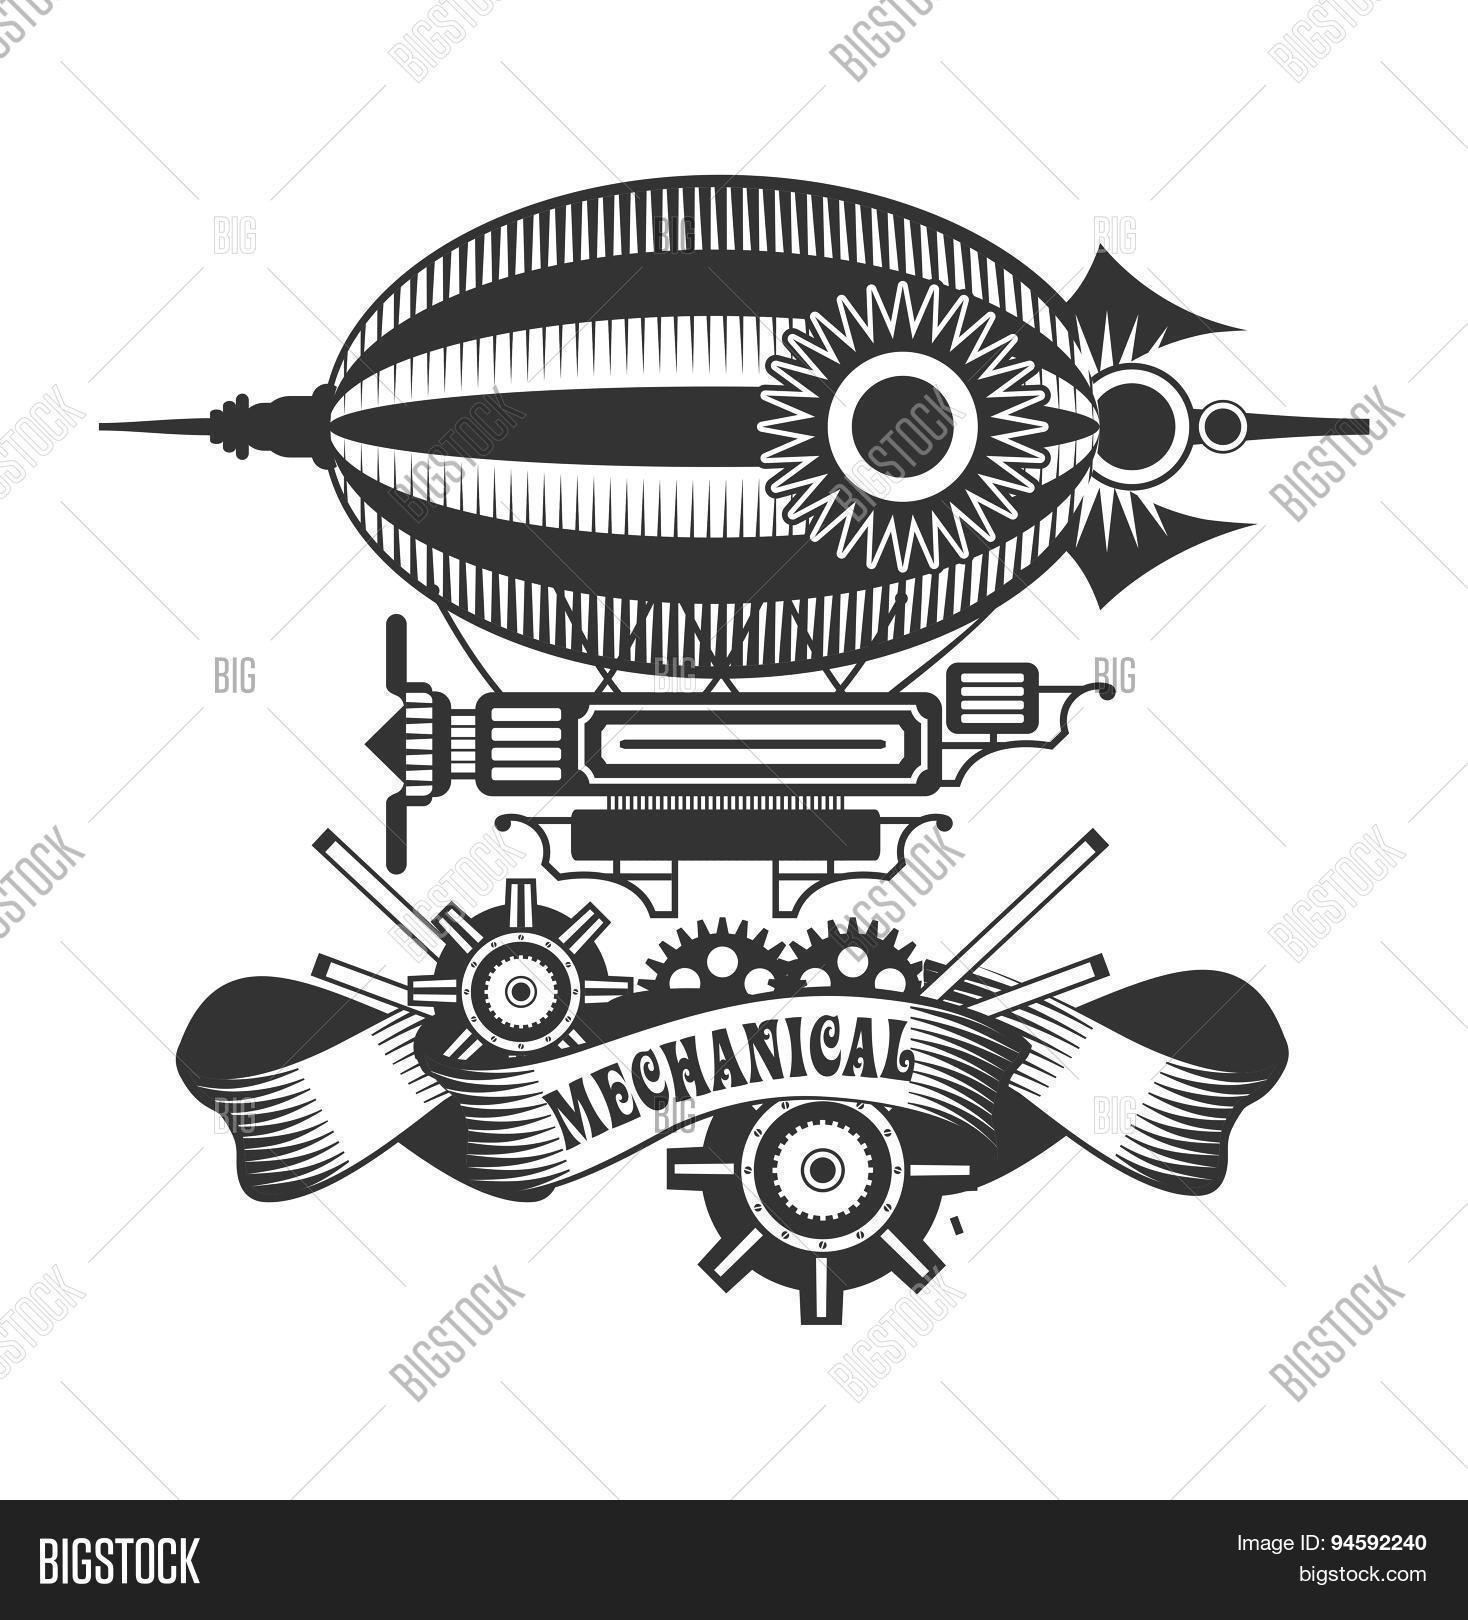 Airship Clip Art Vector and Illustration. 2,242 Airship clipart vector EPS  images available to search from thousands of r… | Stock art, Clip art,  Stock illustration